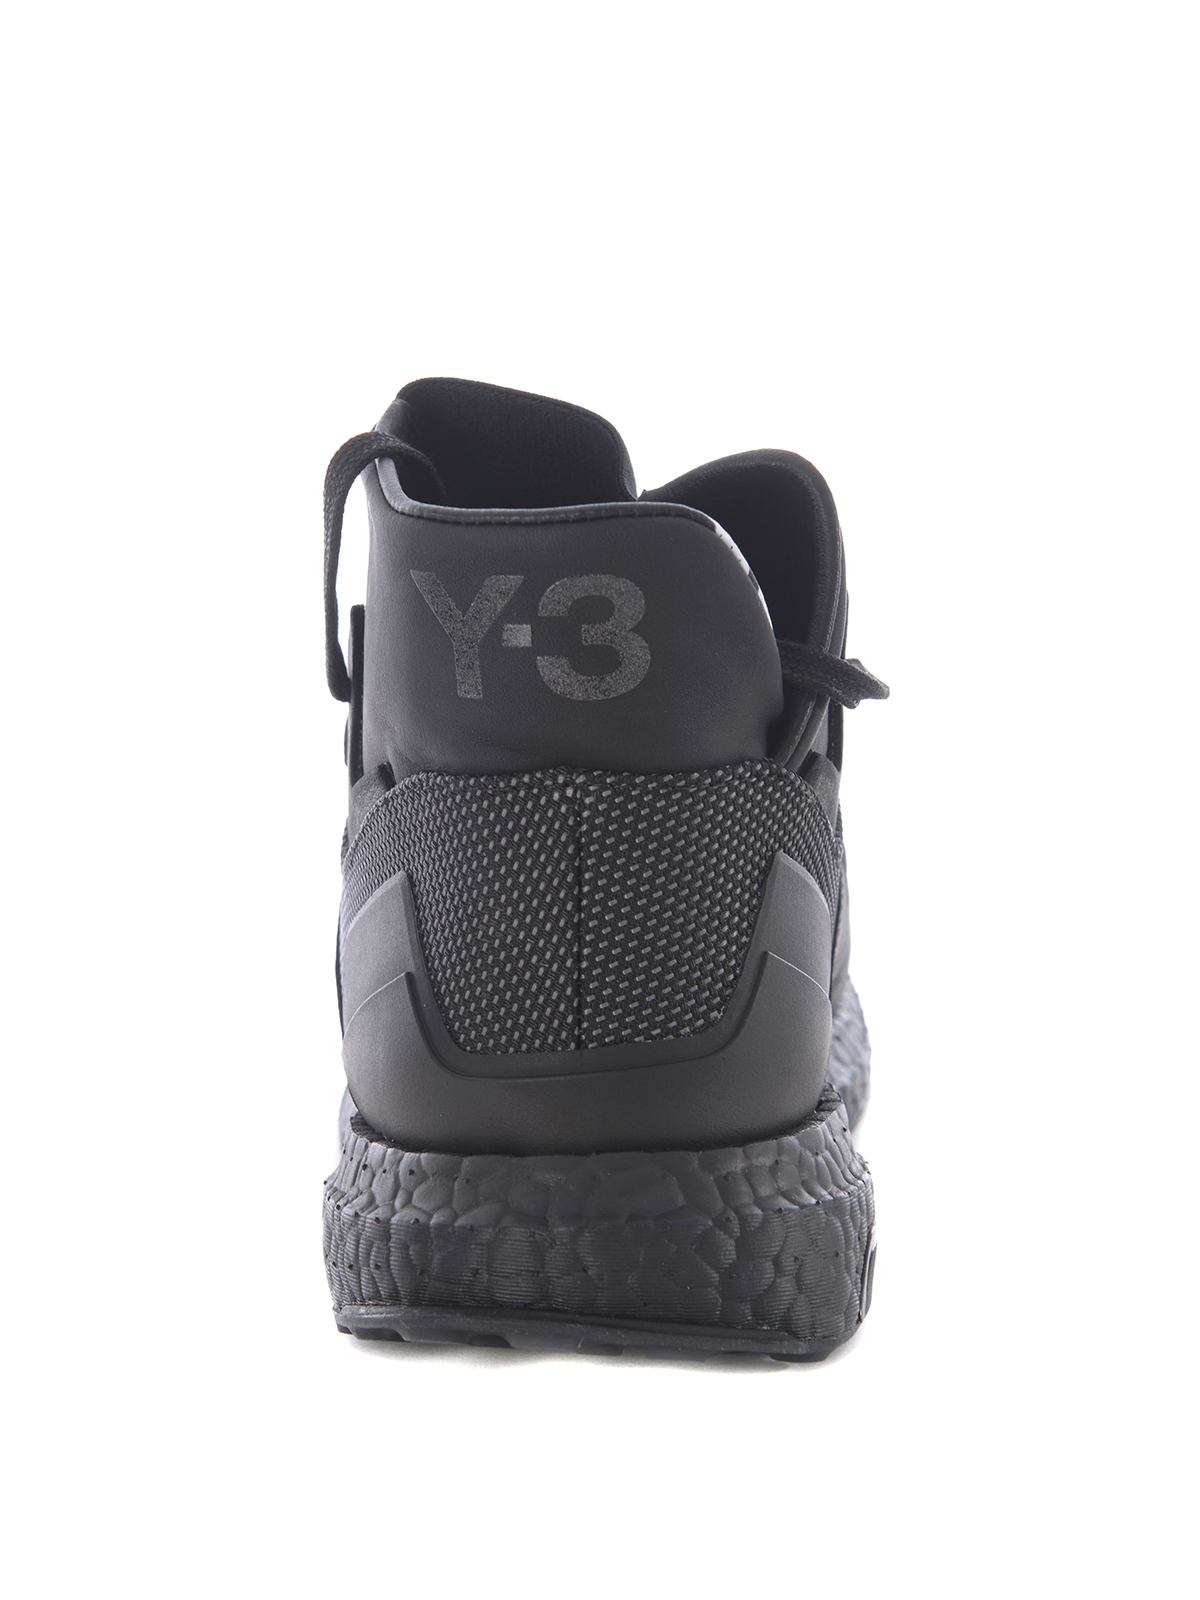 d1cc2eeae7d7e Adidas Y-3 - Kozoko High black sneakers - trainers - CG3160